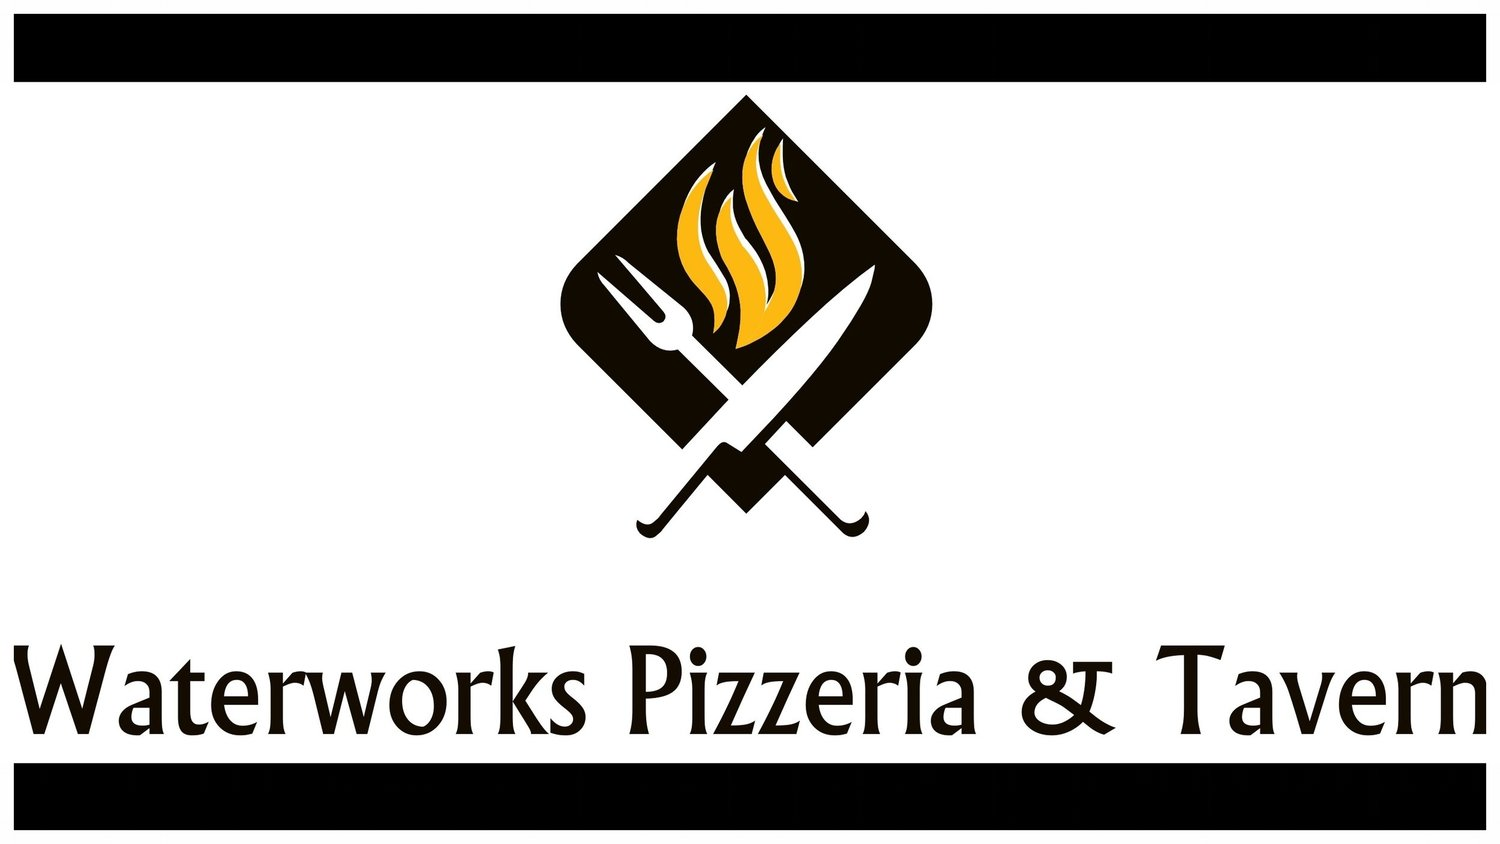 Waterworks Pizzeria & Tavern